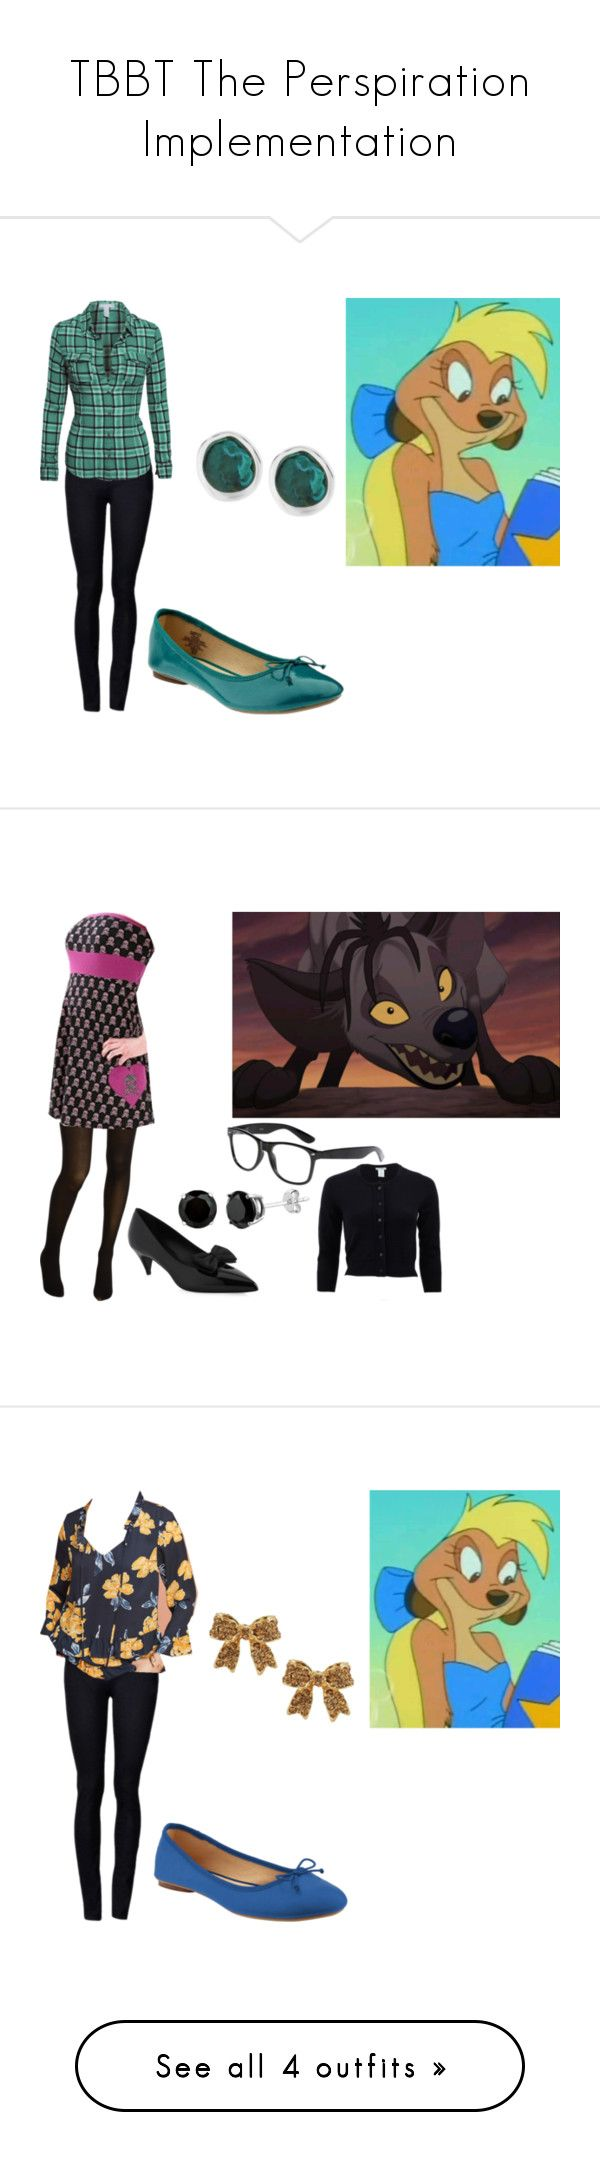 """""""TBBT The Perspiration Implementation"""" by brainyxbat ❤ liked on Polyvore featuring Old Navy, Robert Lee Morris, BANZAI, Cole Haan, Cyrus, Oscar de la Renta, Yves Saint Laurent, Paper Crown, Emily & Ashley and Luichiny"""